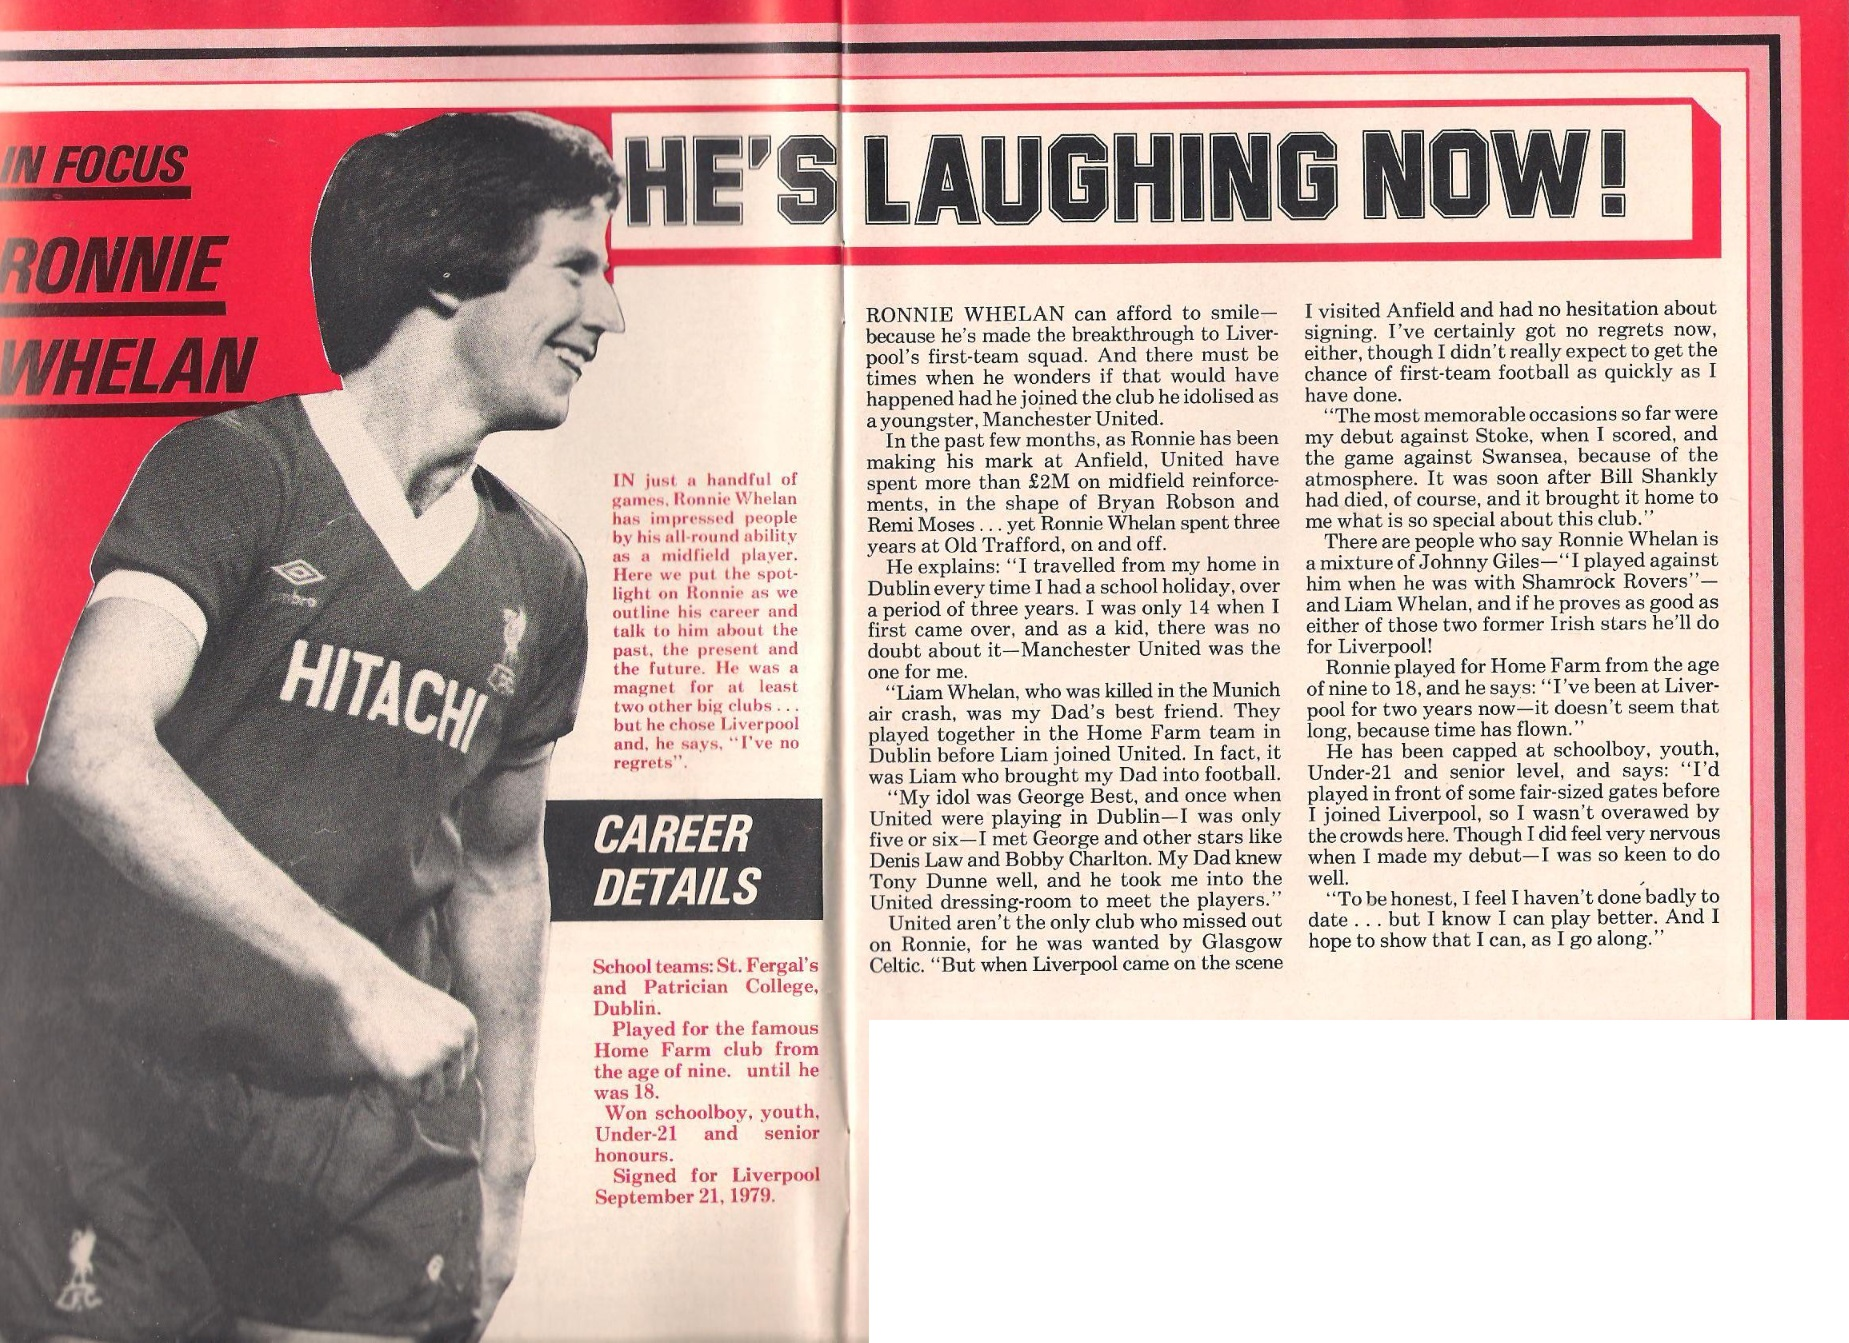 He's laughing now! - A rising star in focus in the match programme in 1981